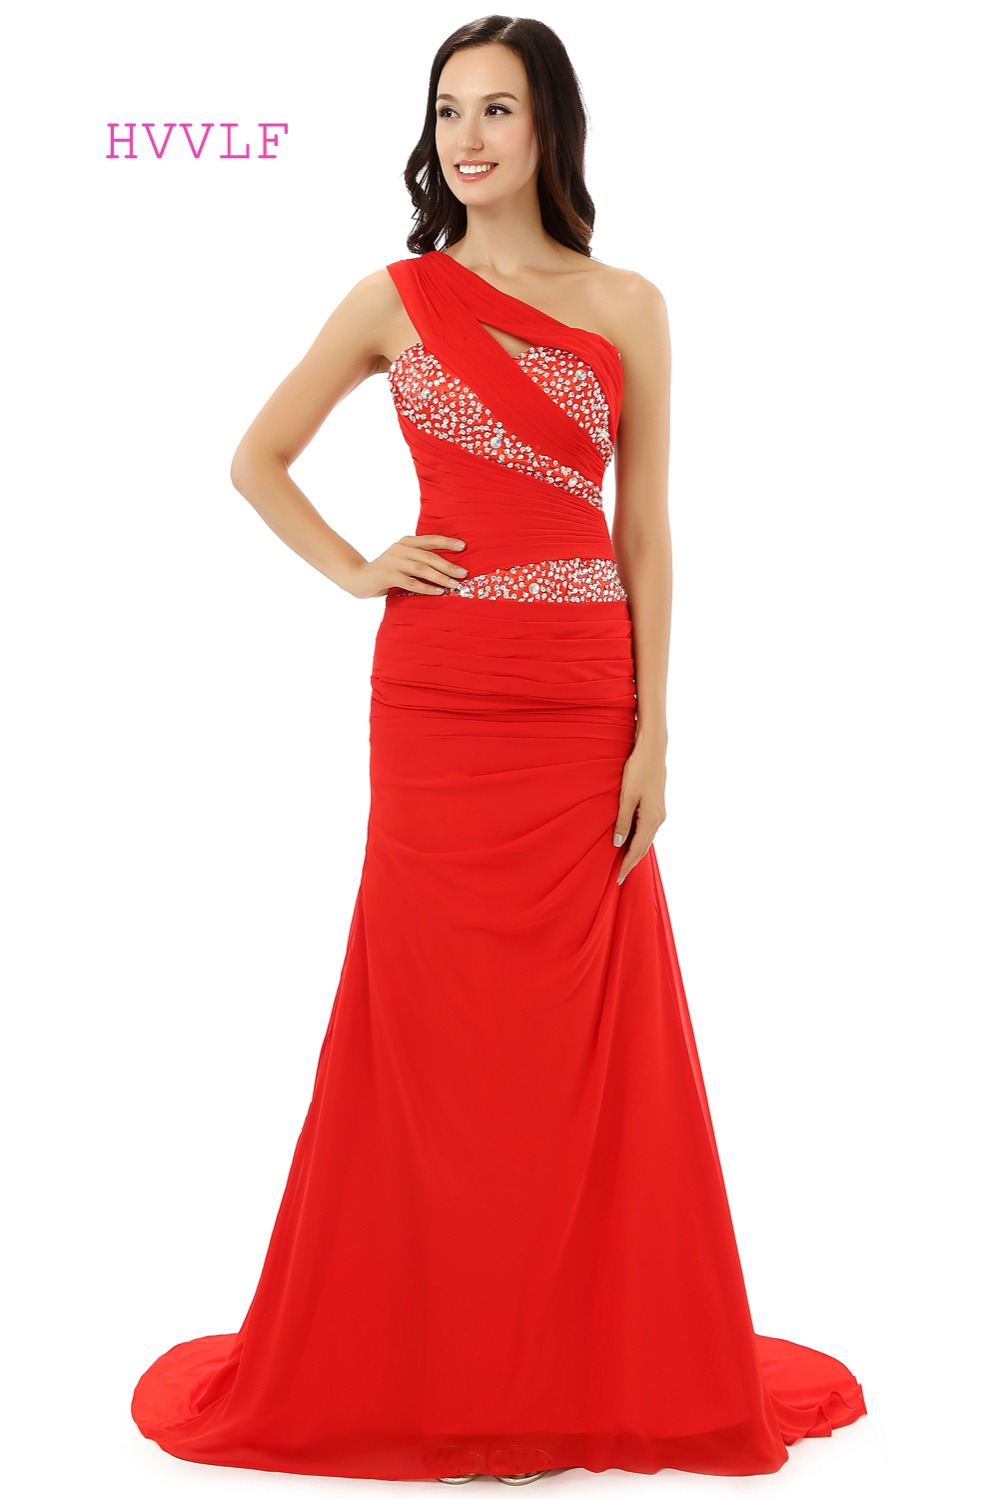 High quality wholesale maternity prom dresses from china maternity one shoulder evening dresses 2017 mermaid chiffon beaded crystals maternity women long evening gown prom ombrellifo Images